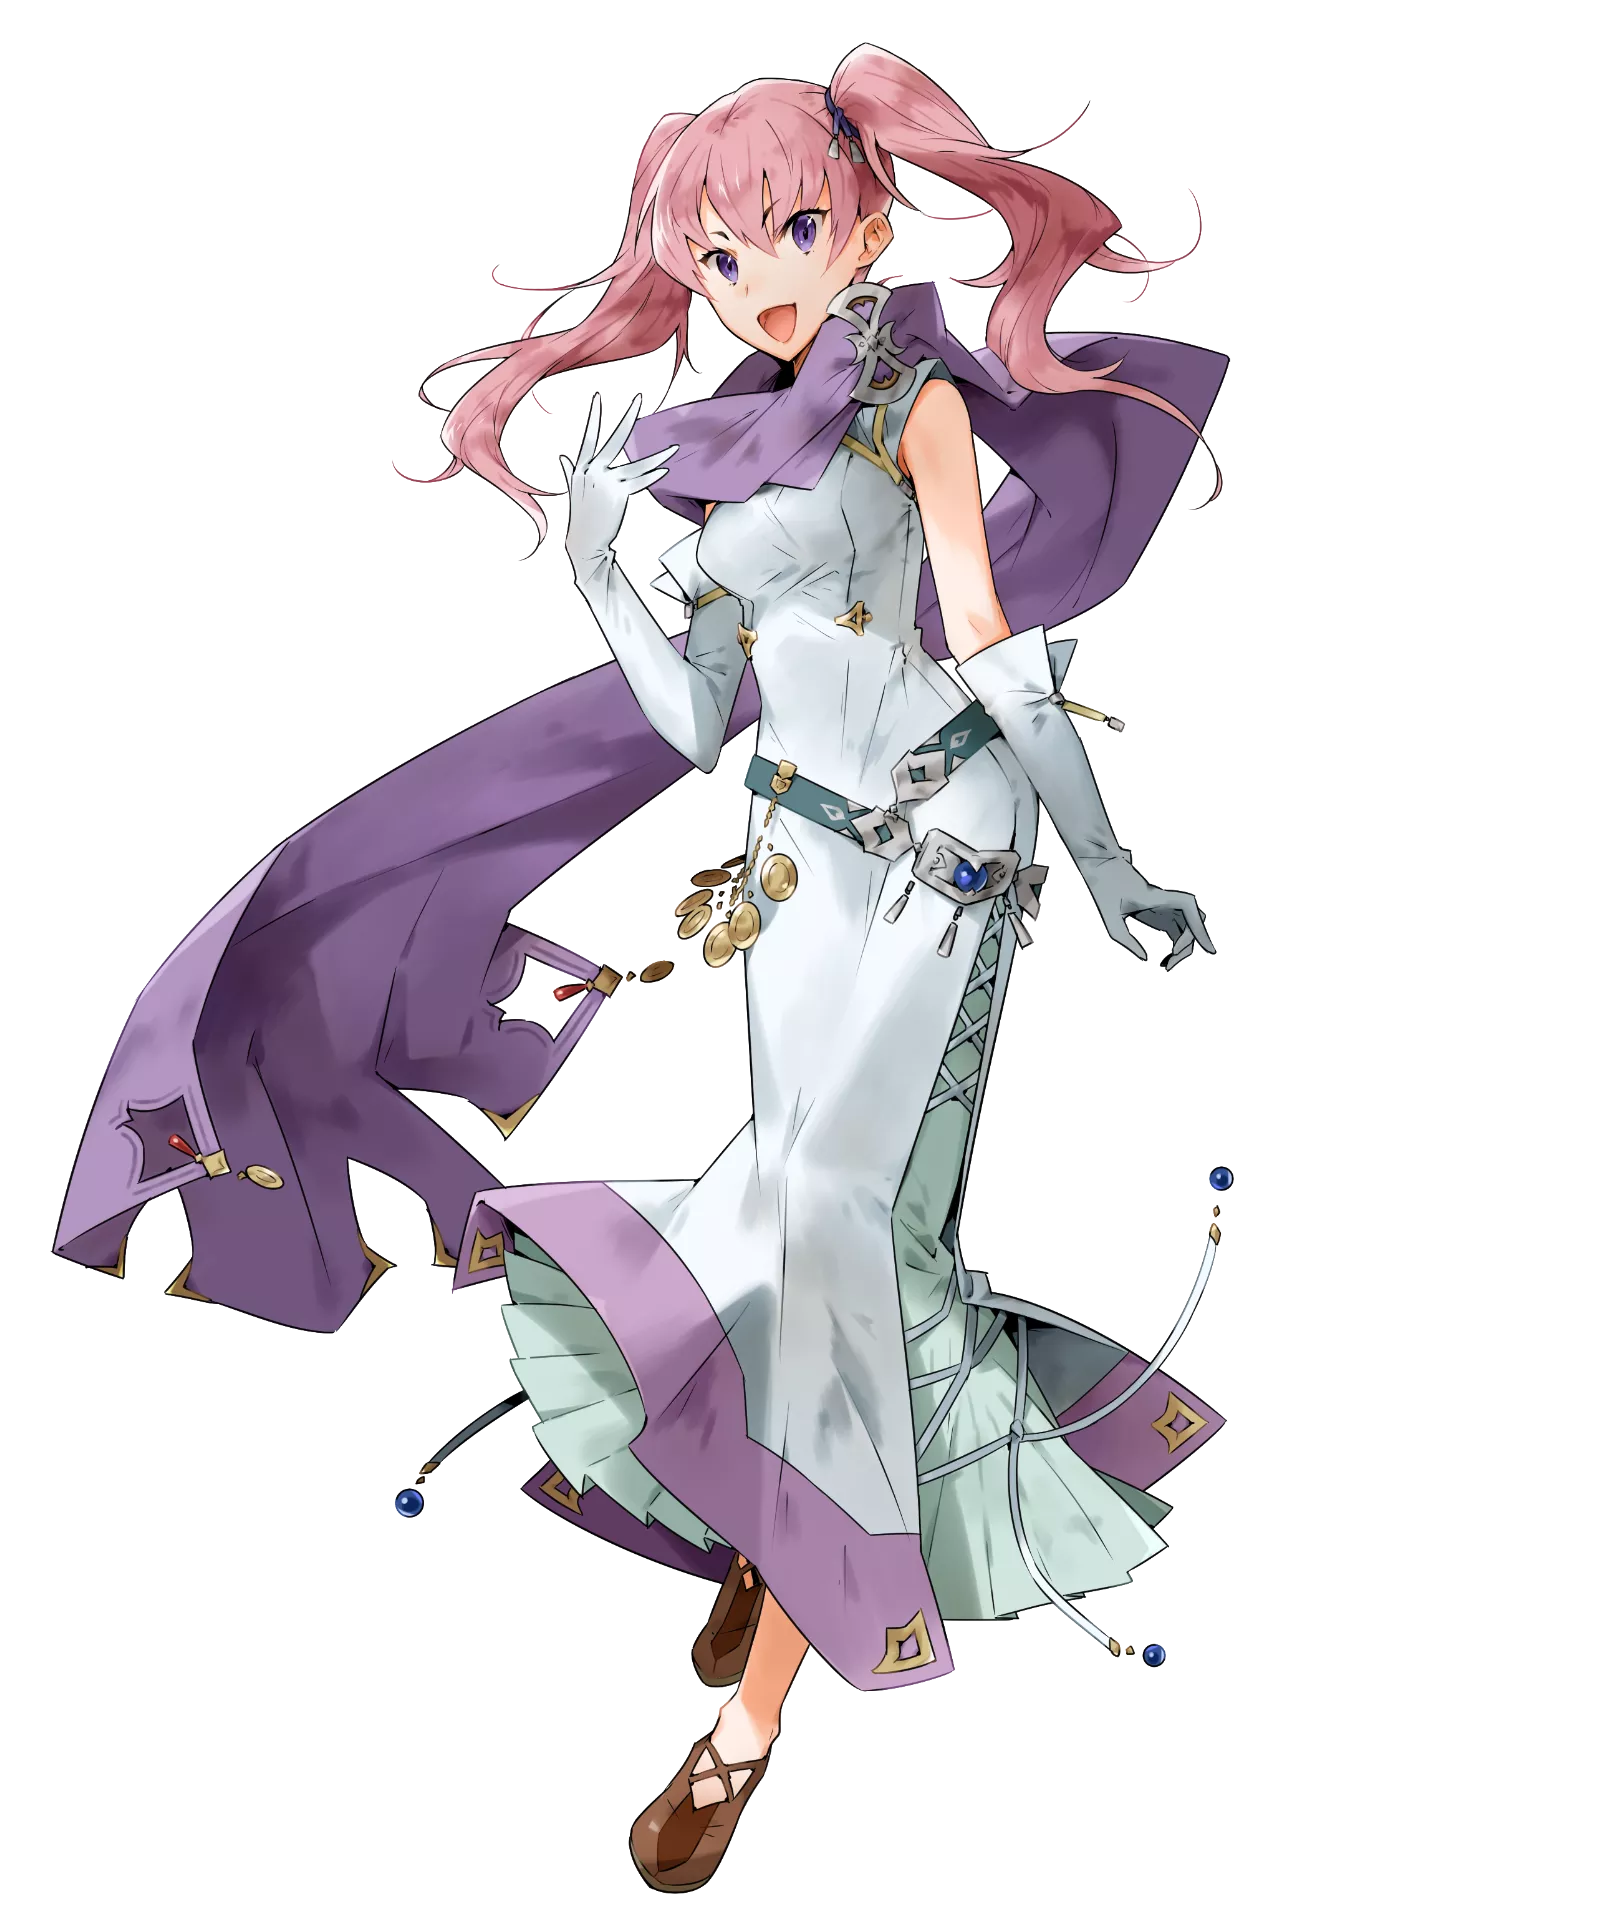 Full_Portrait_Serra.png (PNG Image, 1600 × 1920 pixels) - Scaled (48%)